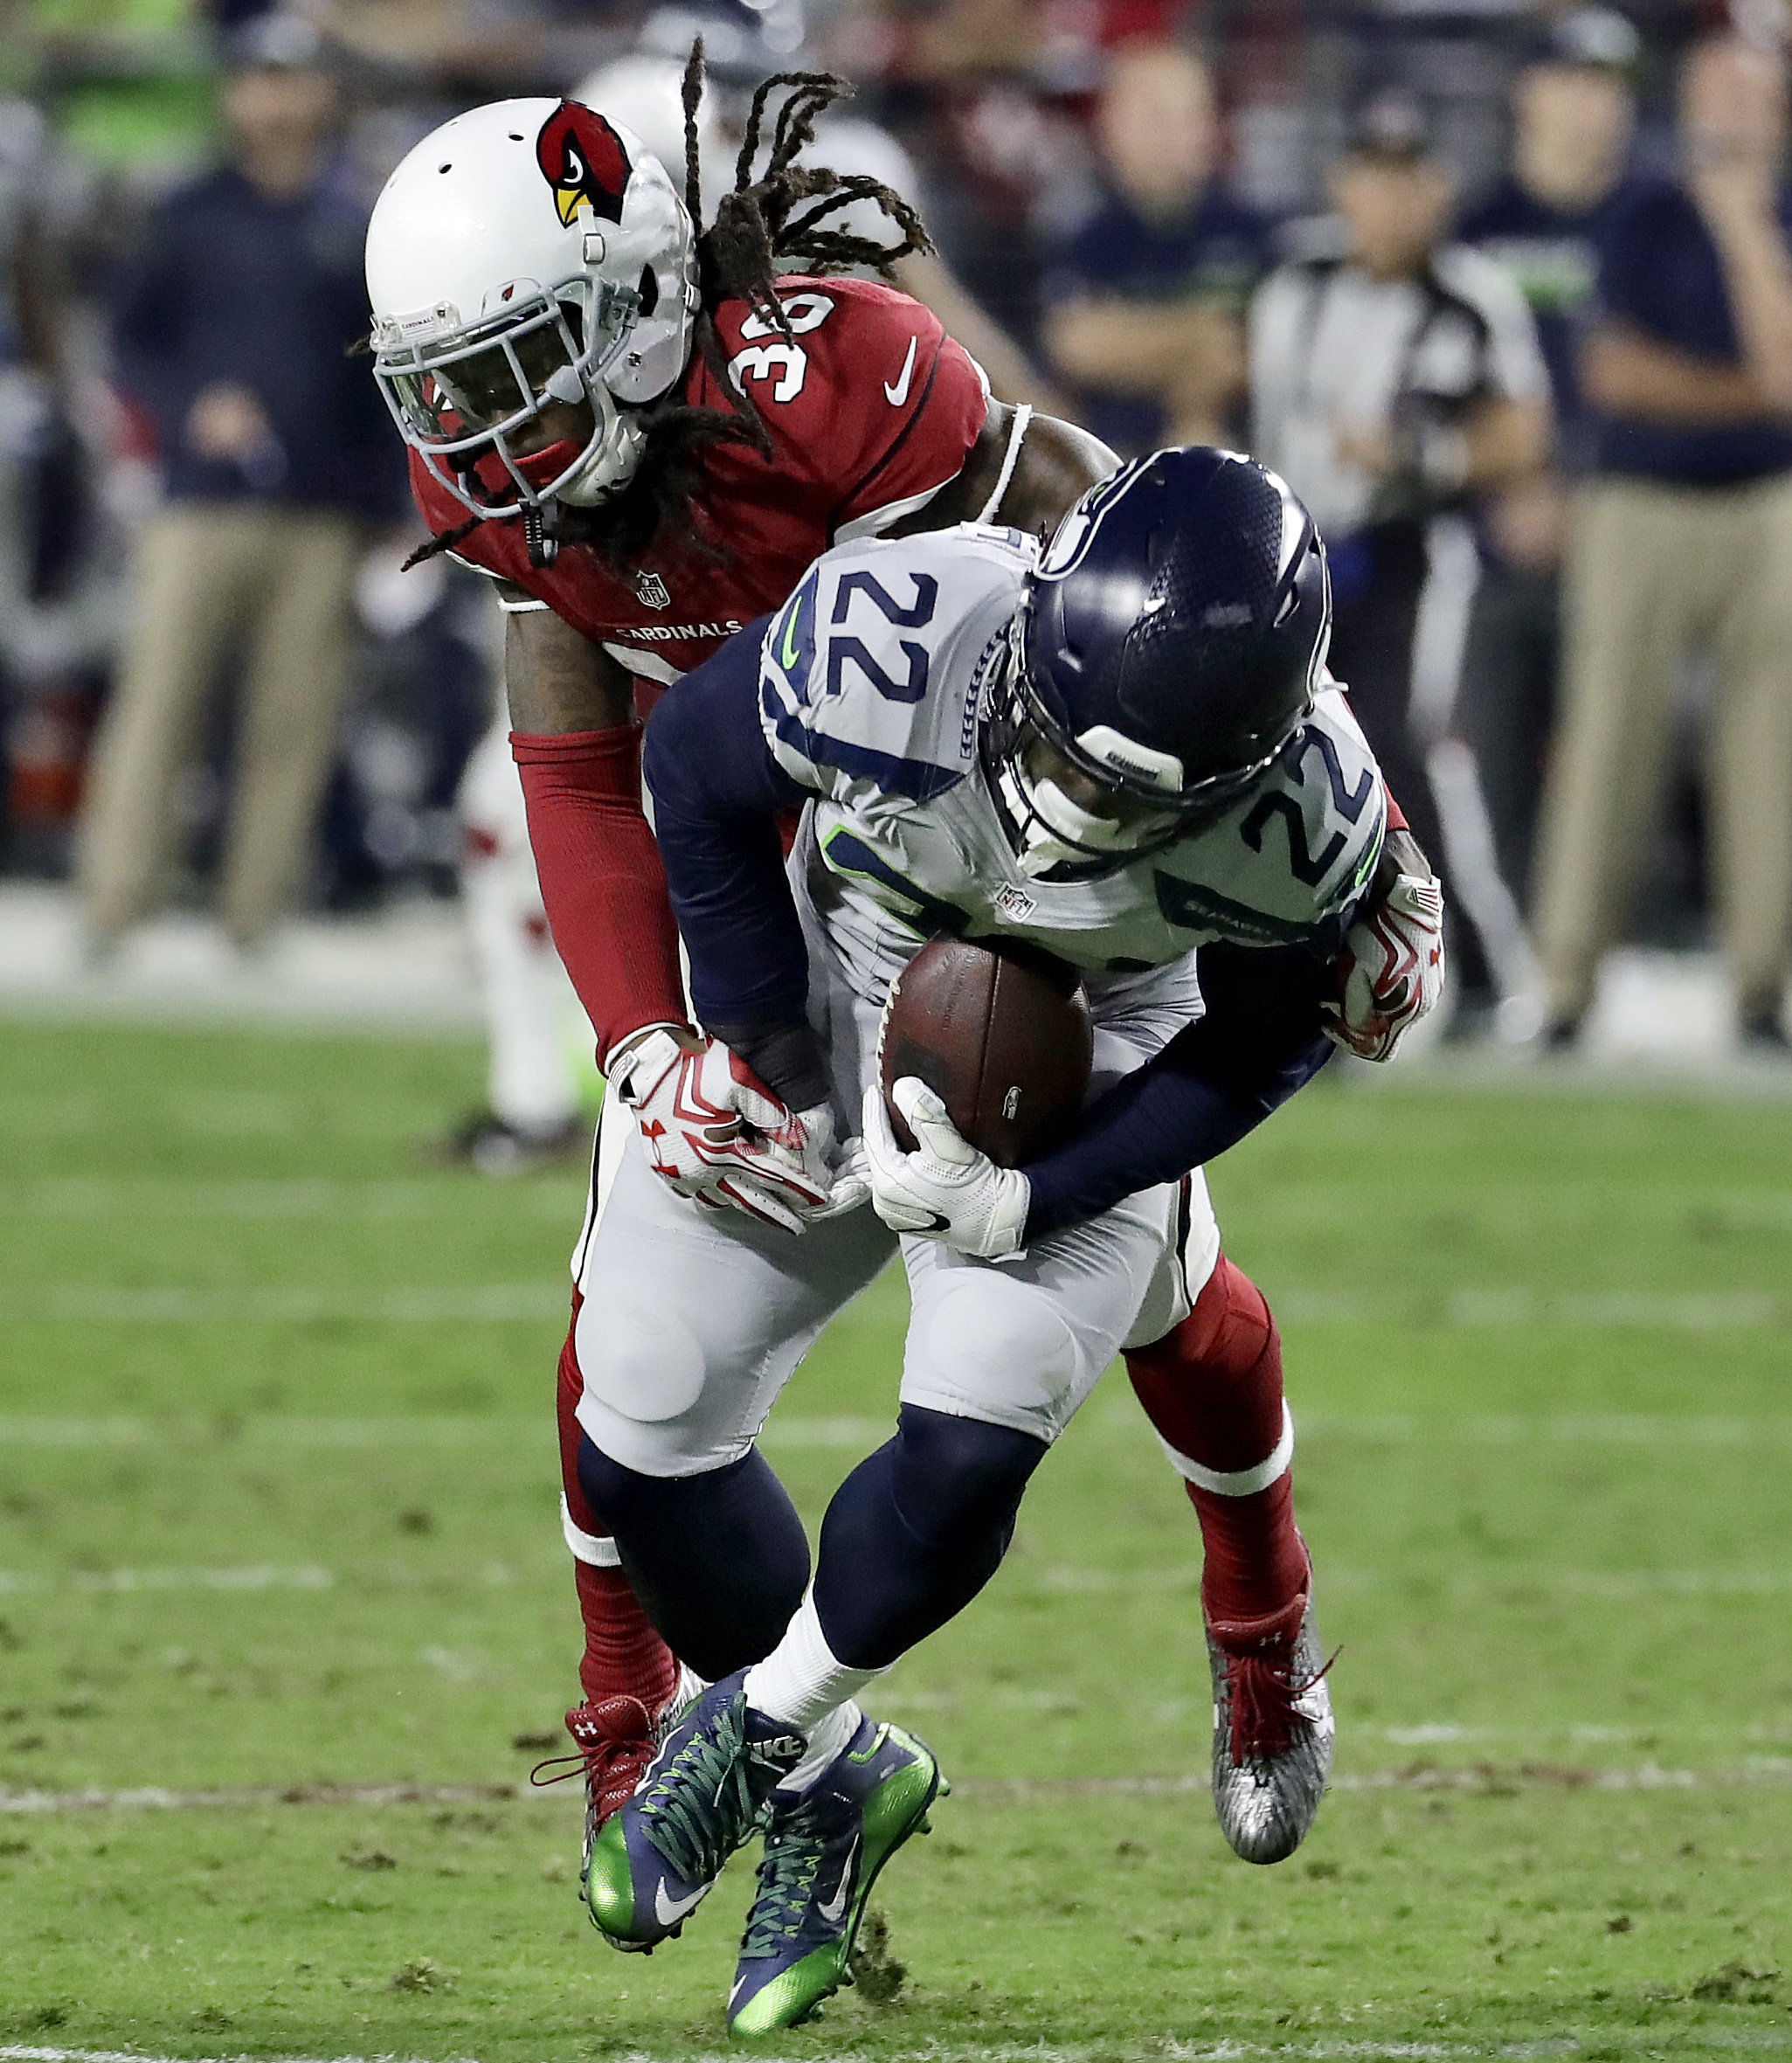 Seattle Seahawks running back C.J. Prosise (22) is hit short of a first down by Arizona Cardinals defensive back D.J. Swearinger (36) during the second half of a football game, Sunday, Oct. 23, 2016, in Glendale, Ariz. (AP Photo/Rick Scuteri)